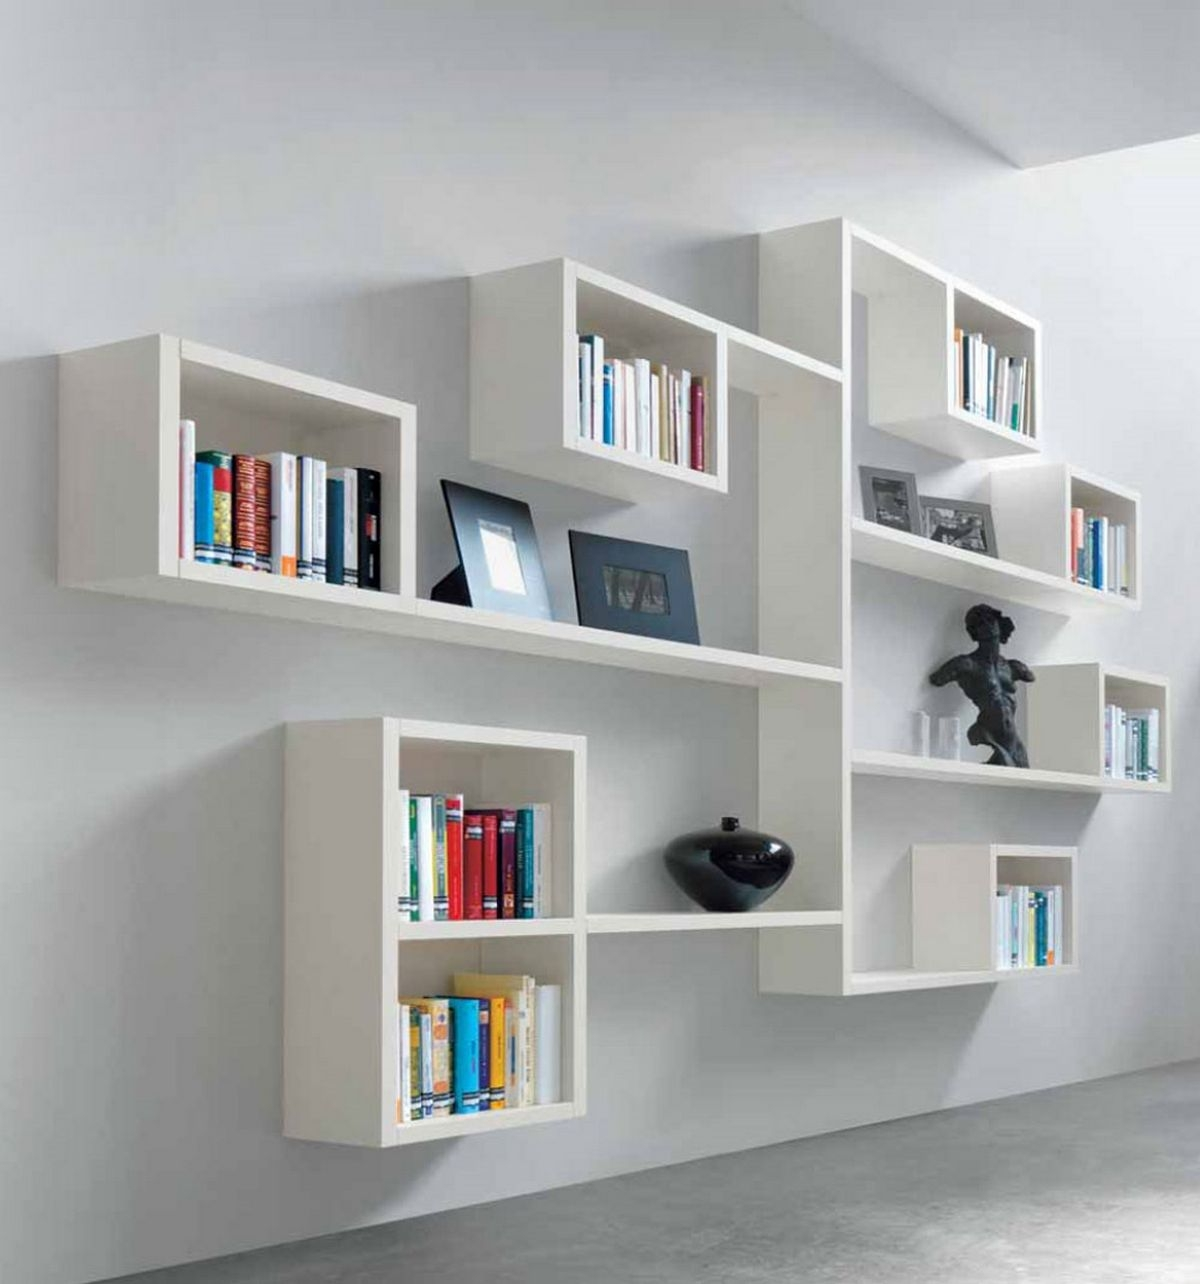 26 Of The Most Creative Bookshelves Designs Minimalist Book With Regard To Book Cabinet Design (View 3 of 15)